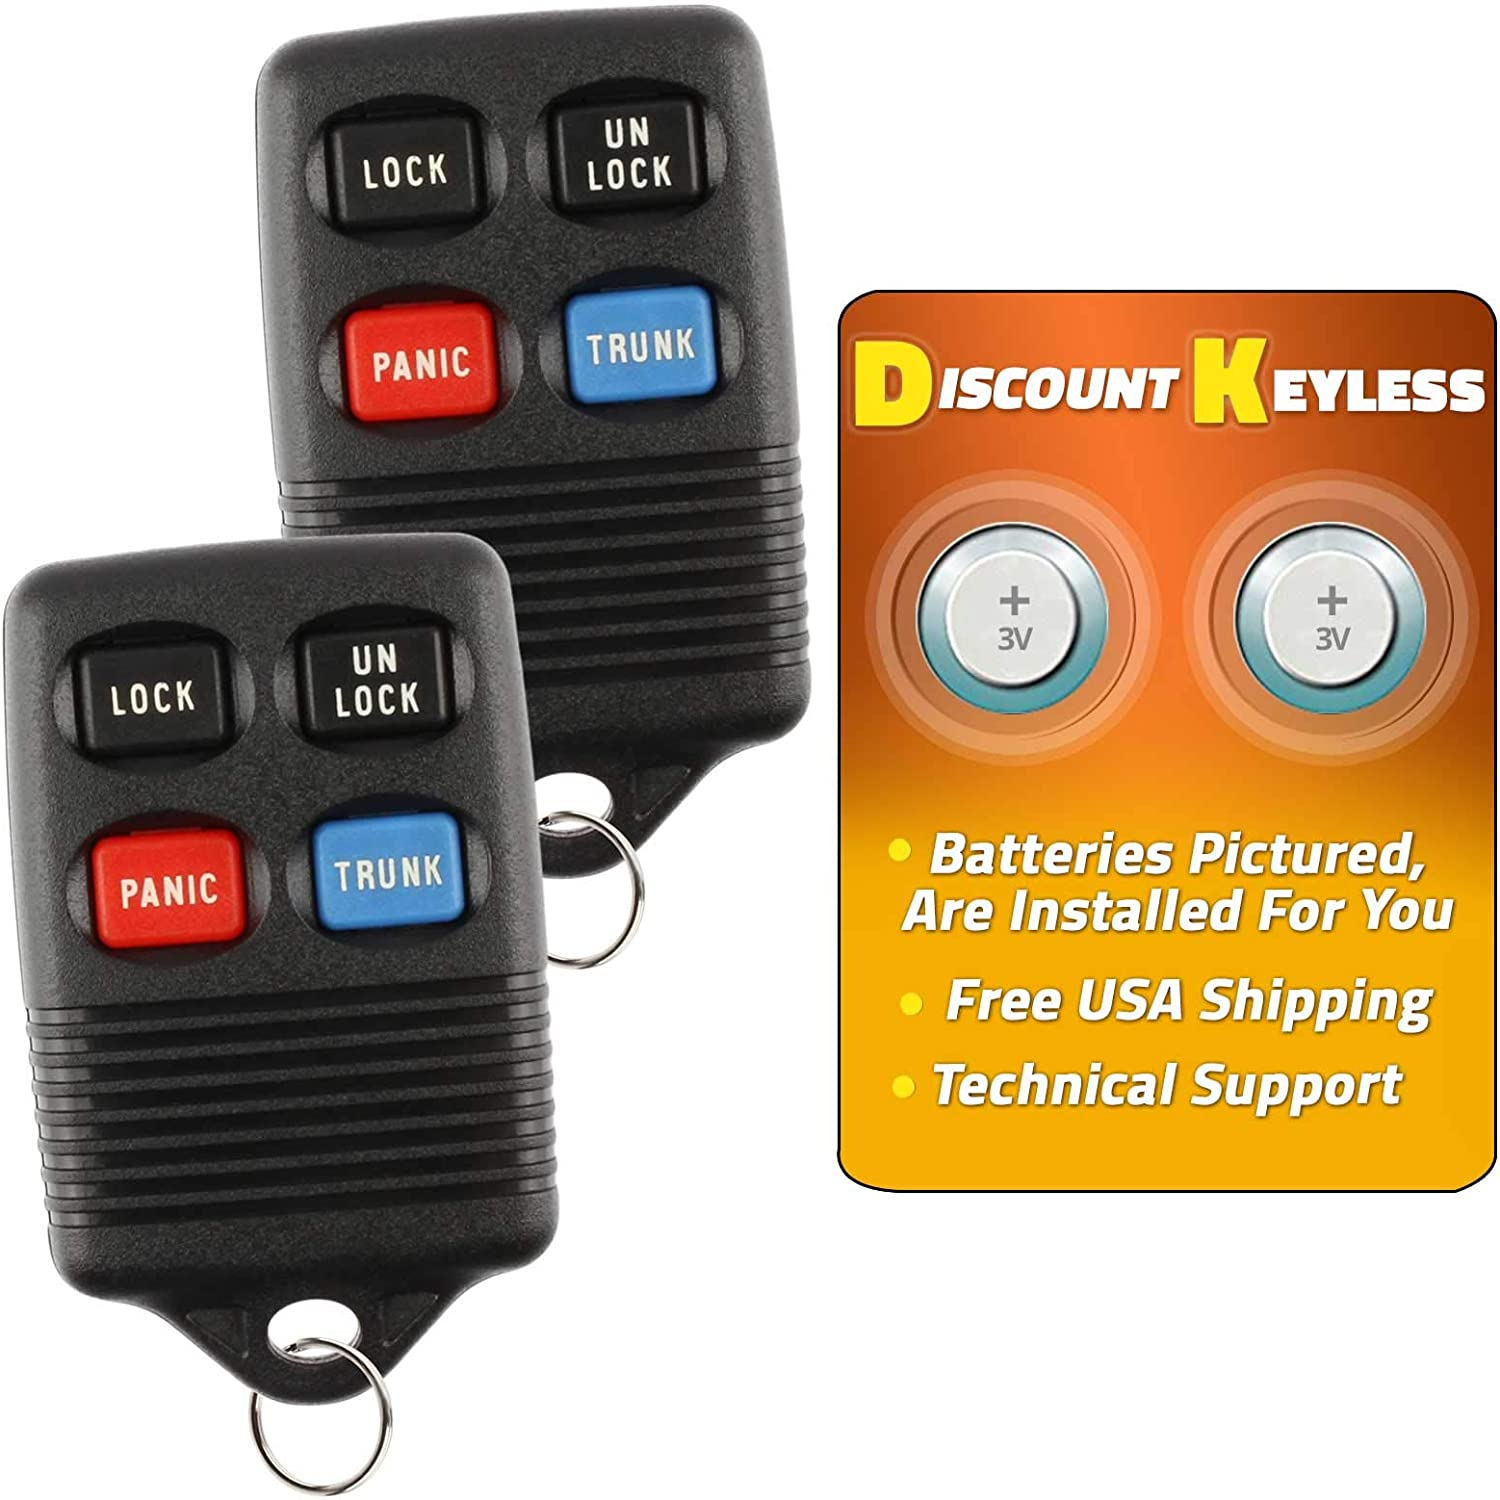 Discount Keyless Replacement Trunk Key Fob Car Entry Remote Compatible with Ford GQ43VT4T